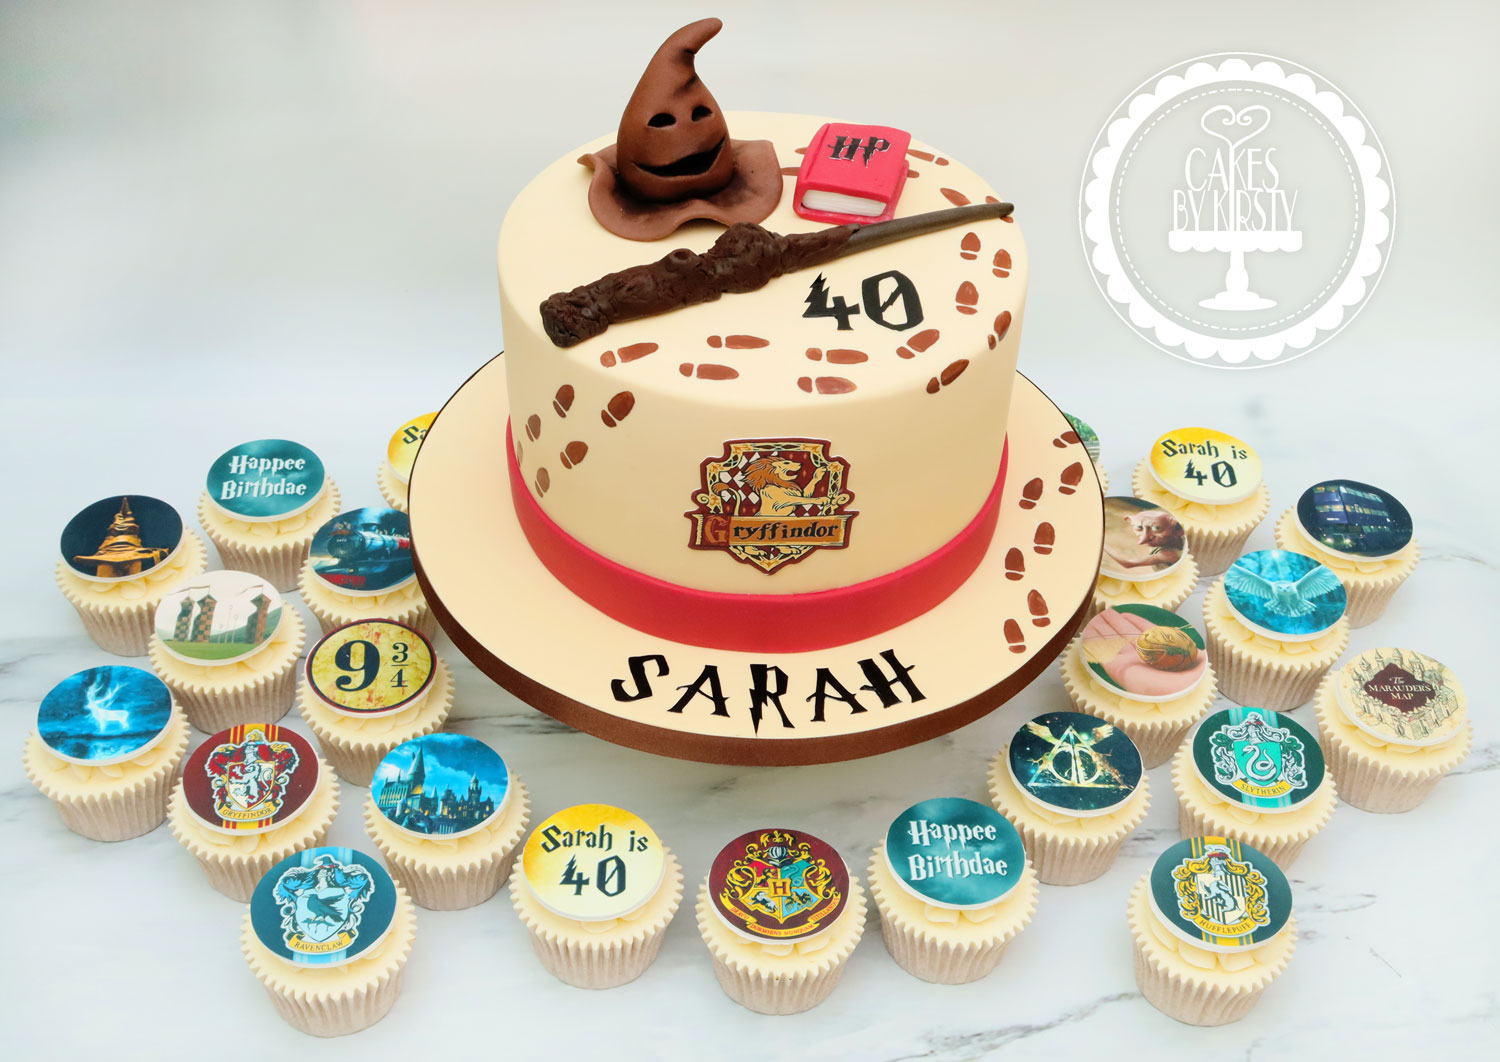 20191122 - Harry Potter Gryffindor Cake